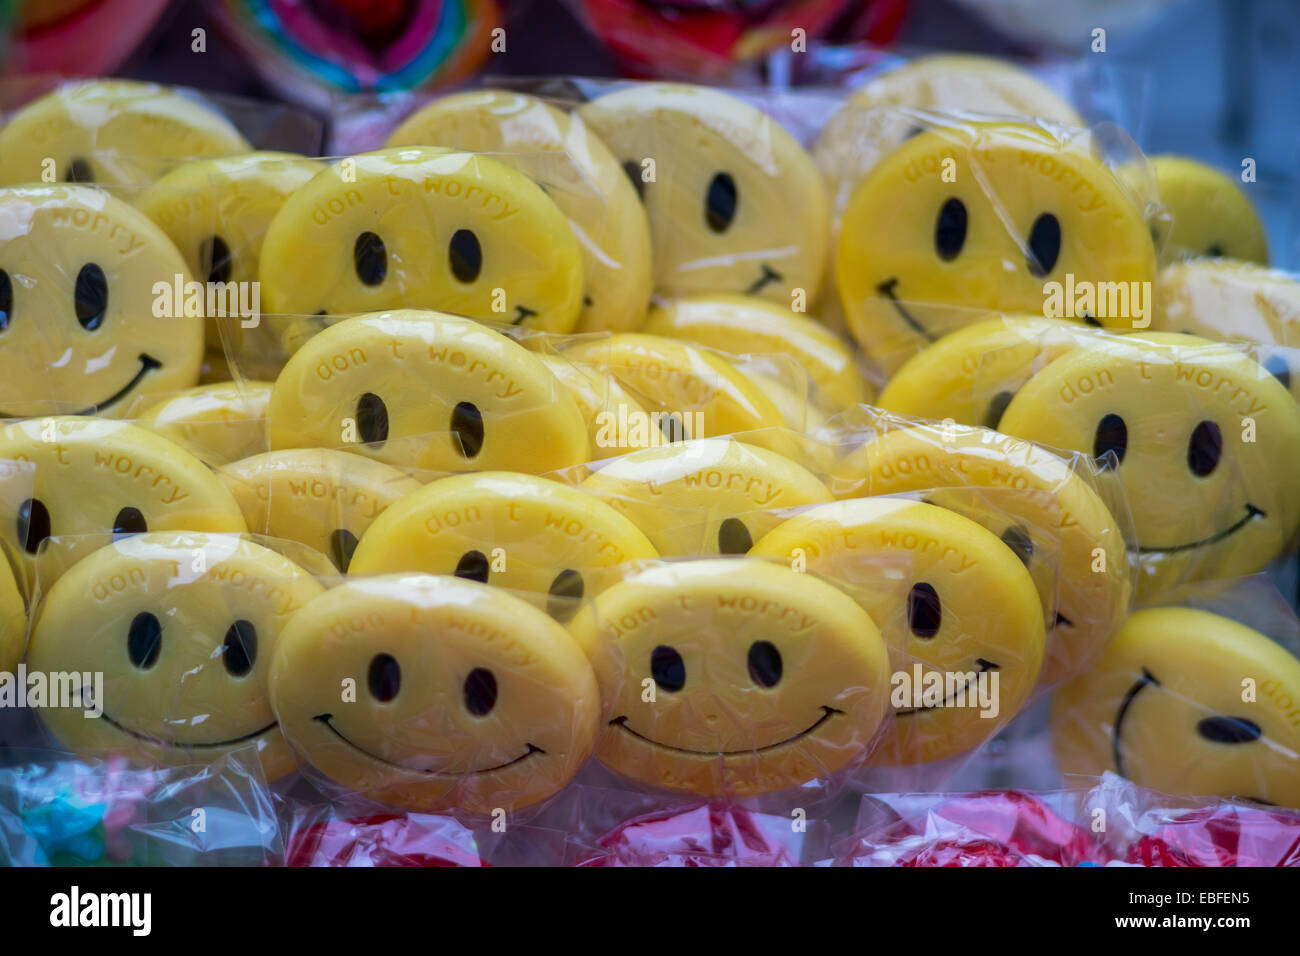 Smile!Be happy!Don't worry!smiling lollipops - Stock Image